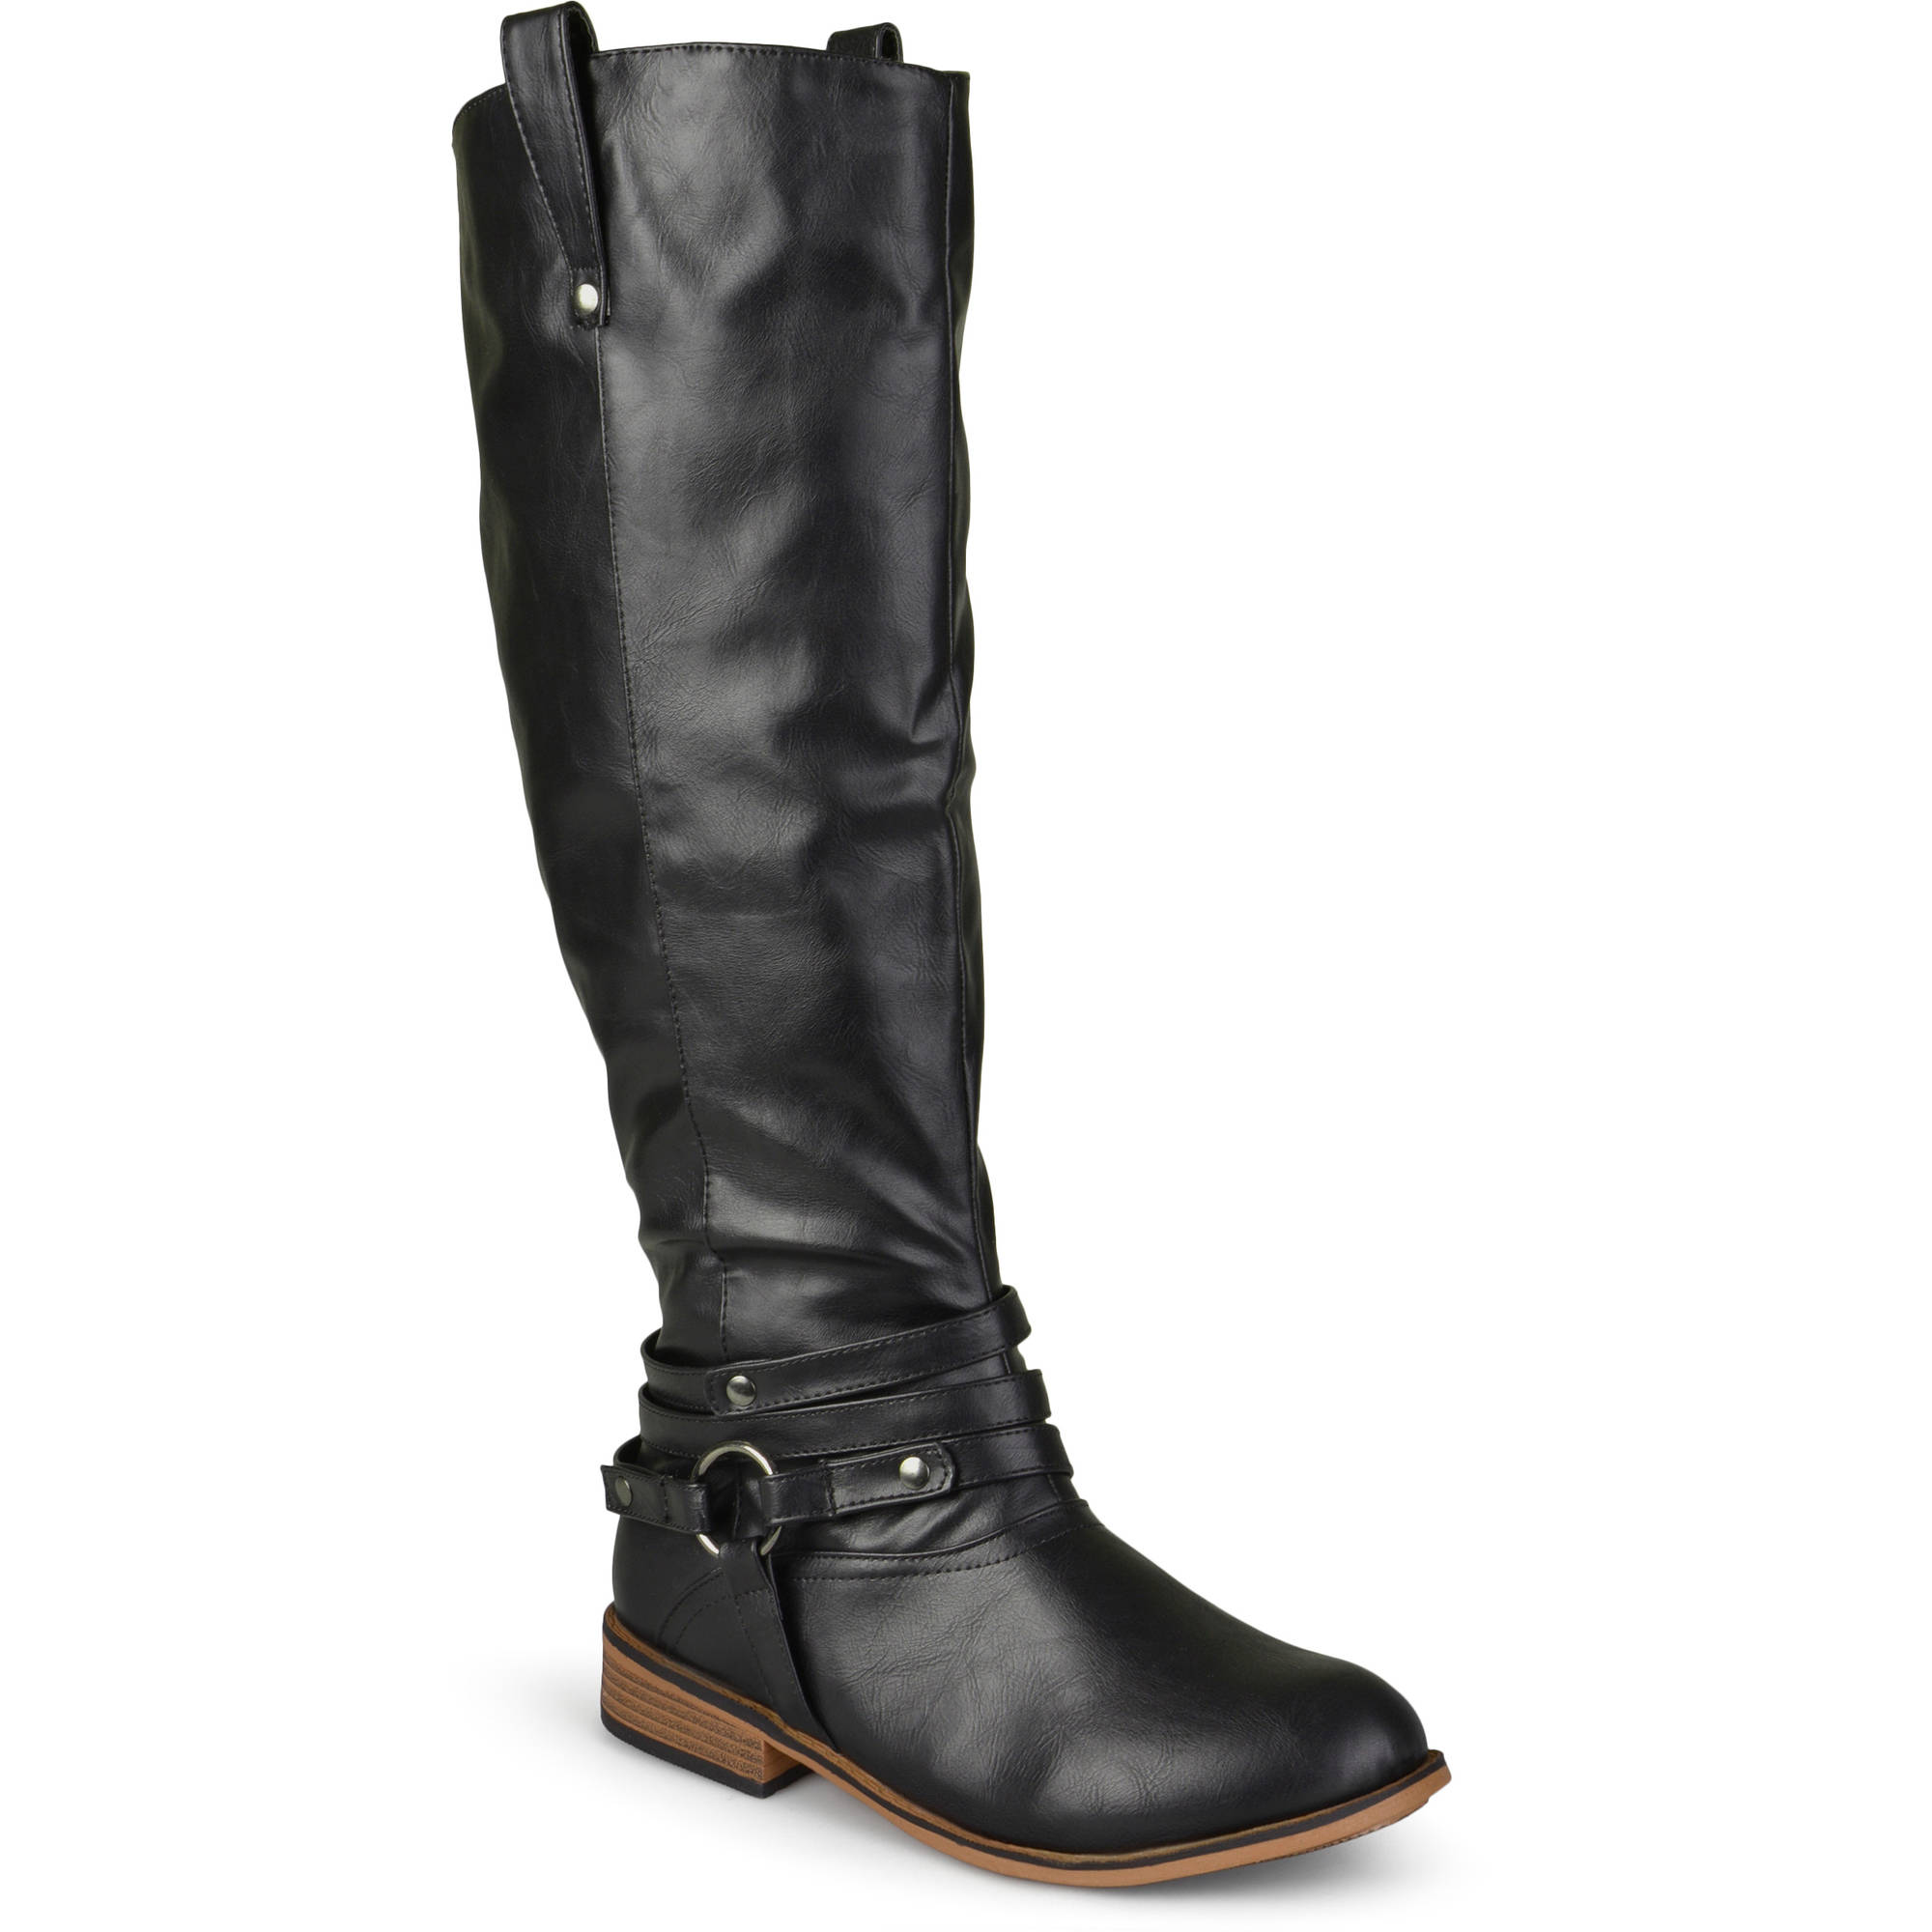 Brinley Co. - Women s Mid-calf Riding Boots - Walmart.com 3301b7c9da